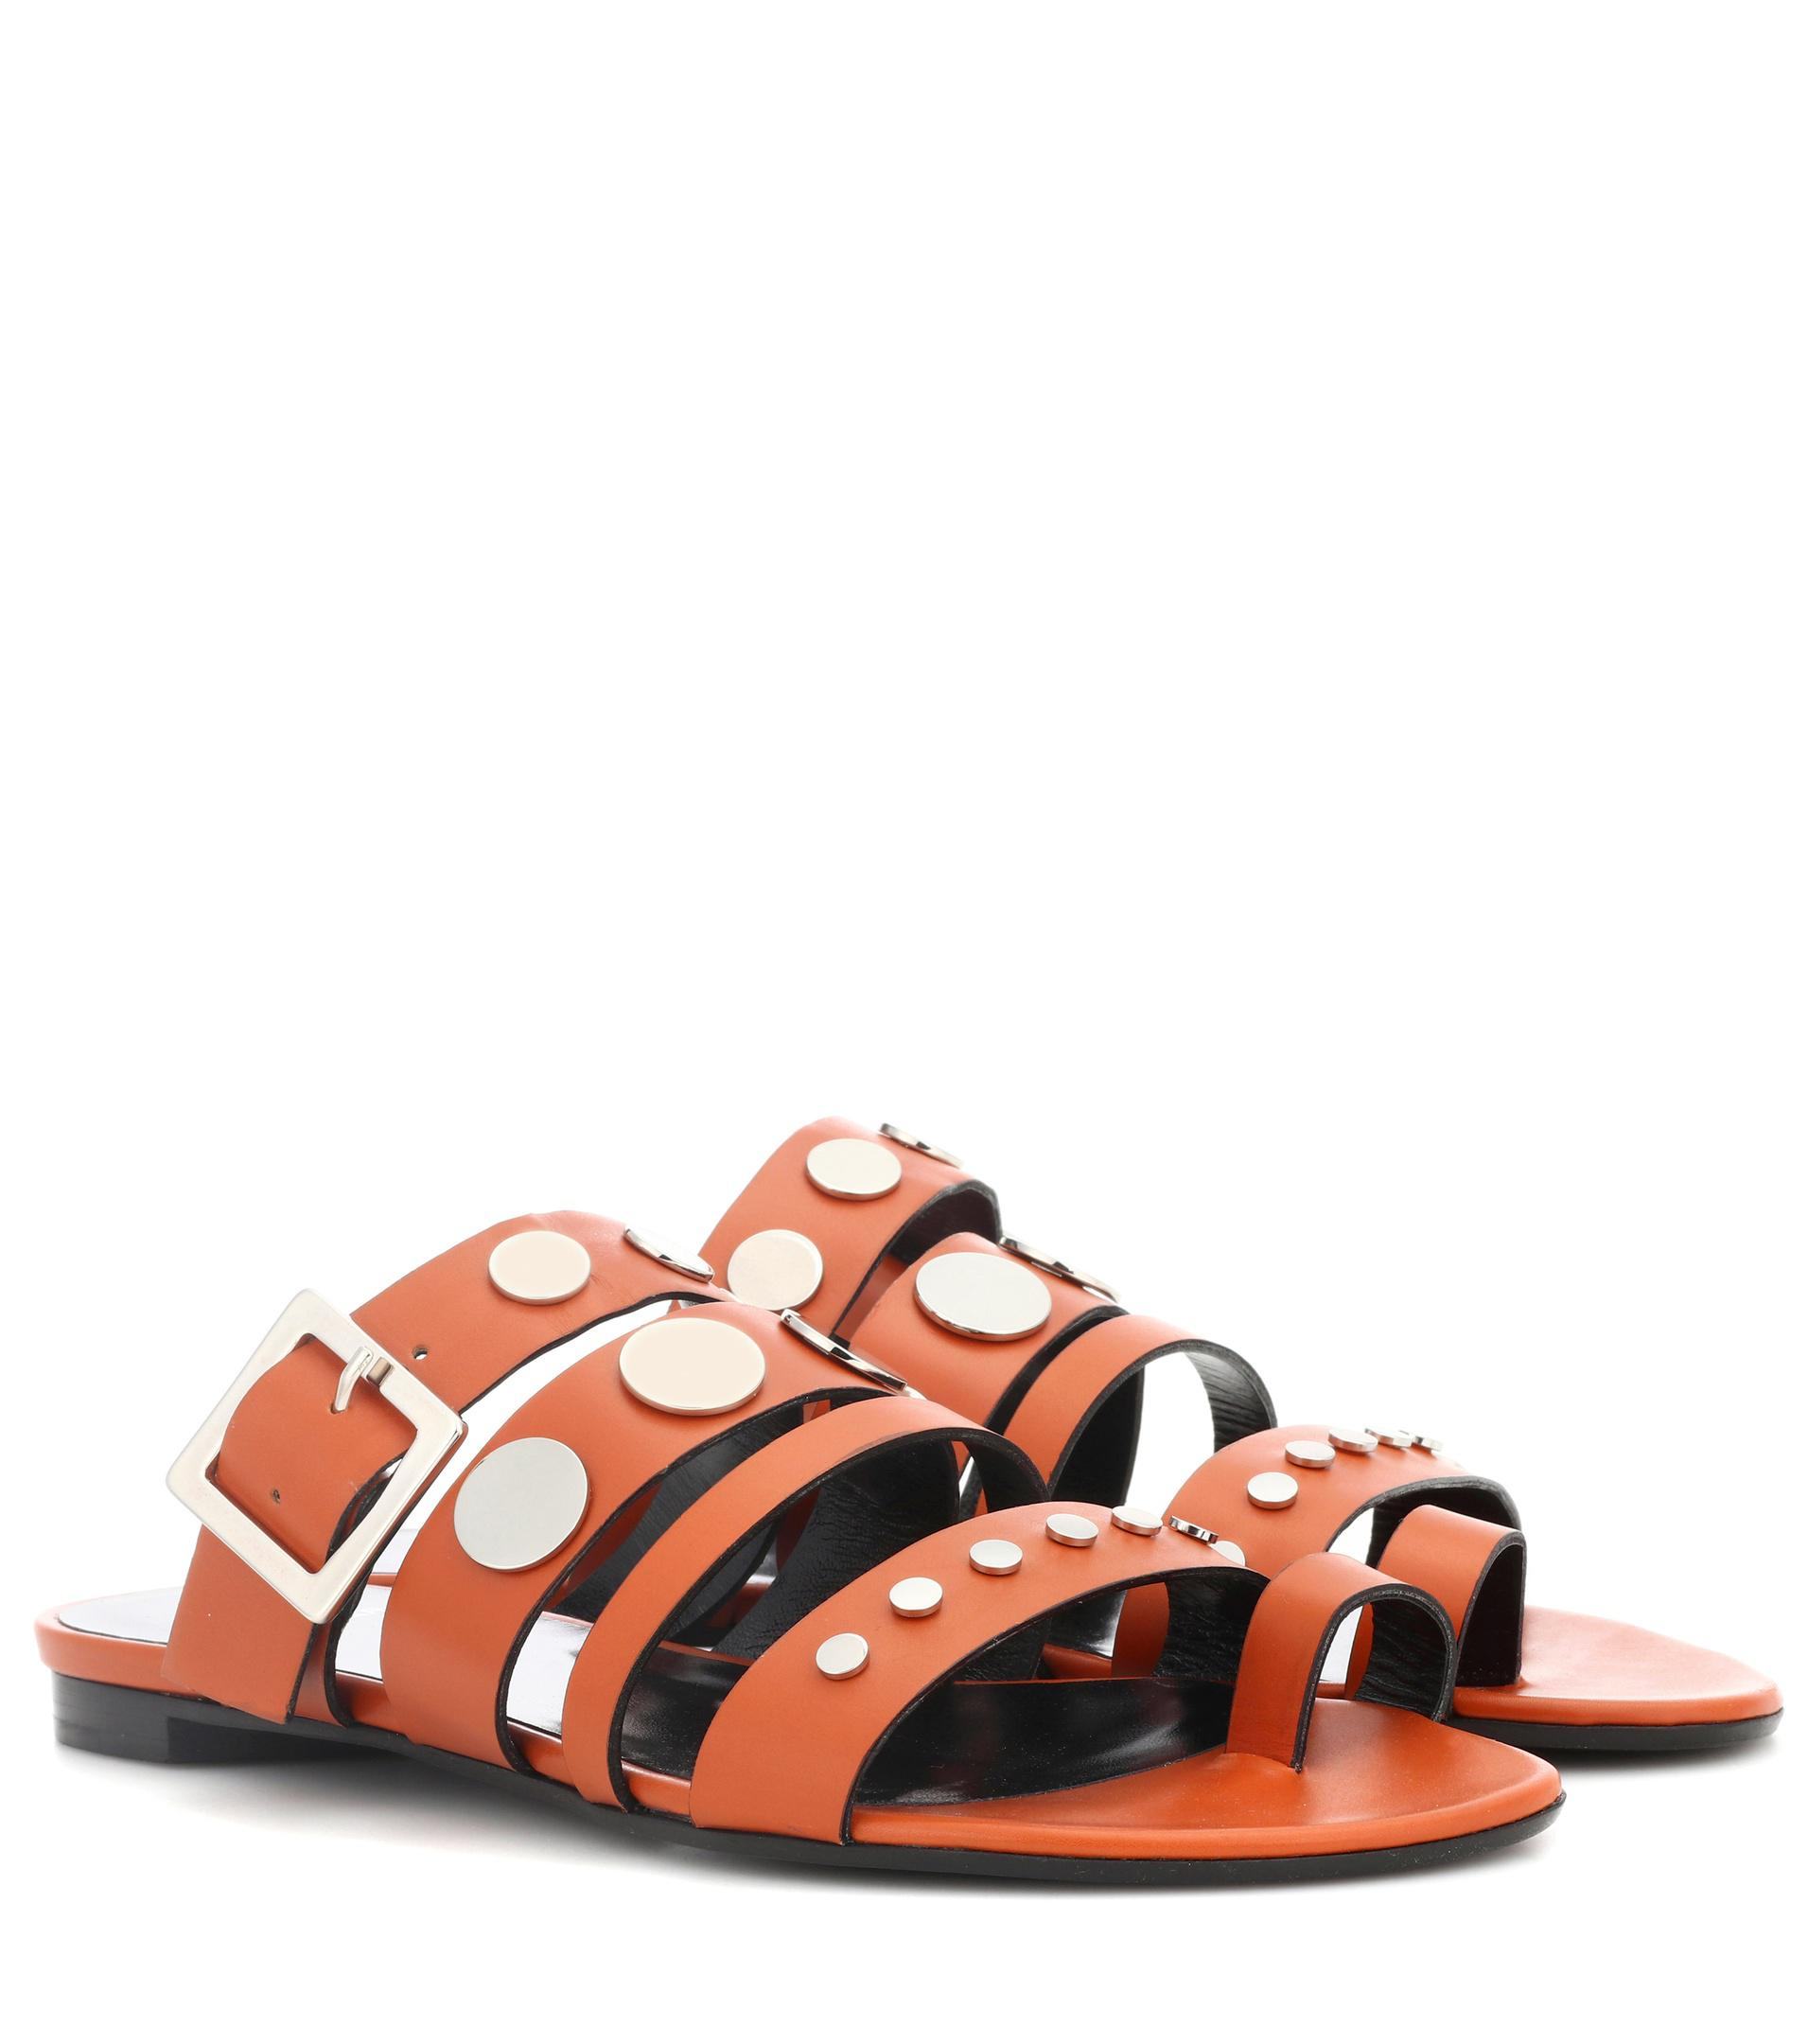 Dani sandals - Brown Pierre Hardy 6cWQgP